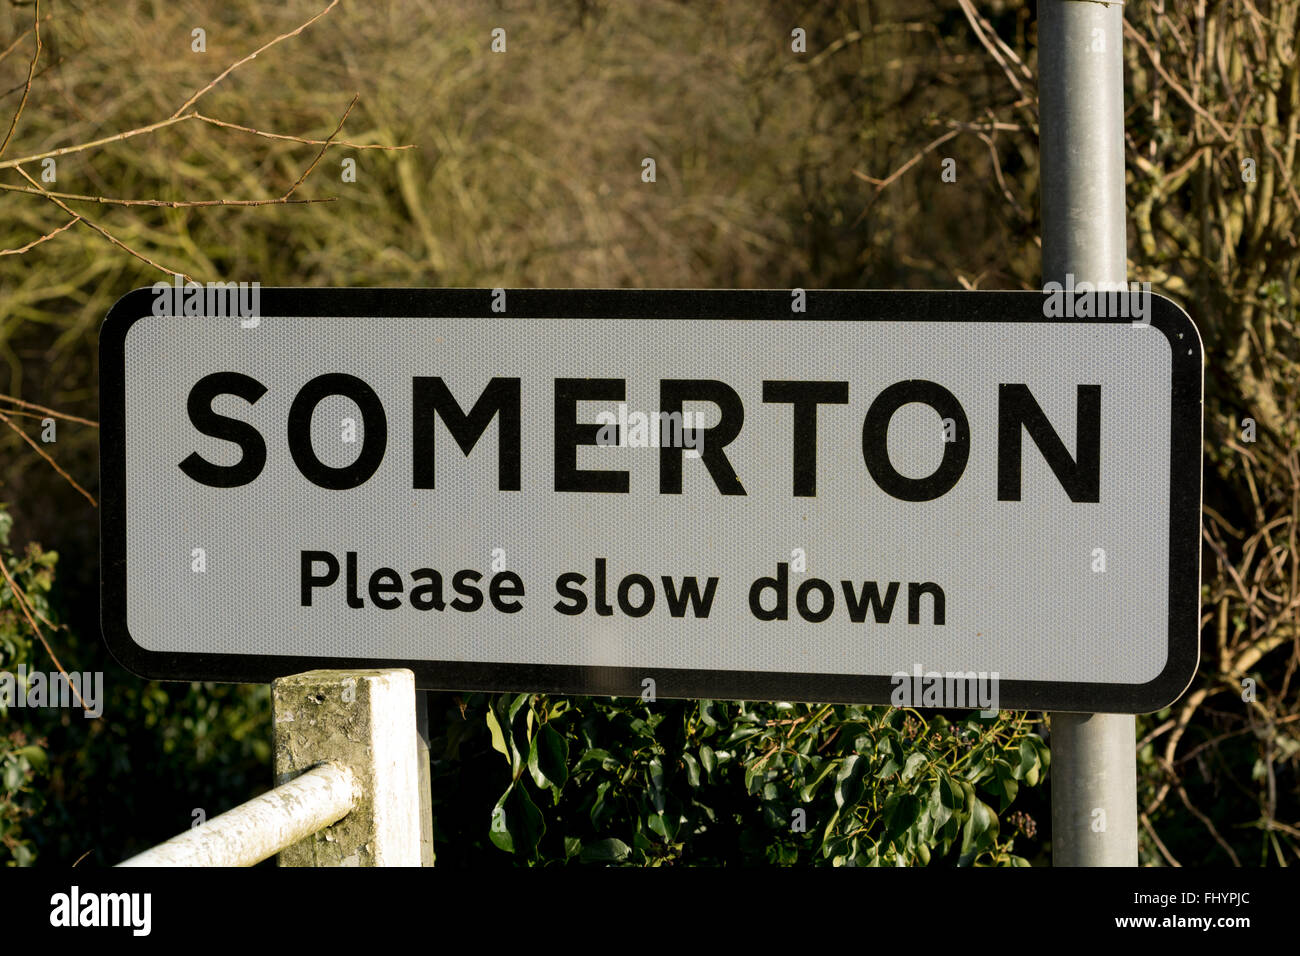 Somerton village sign, Oxfordshire, England, UK - Stock Image